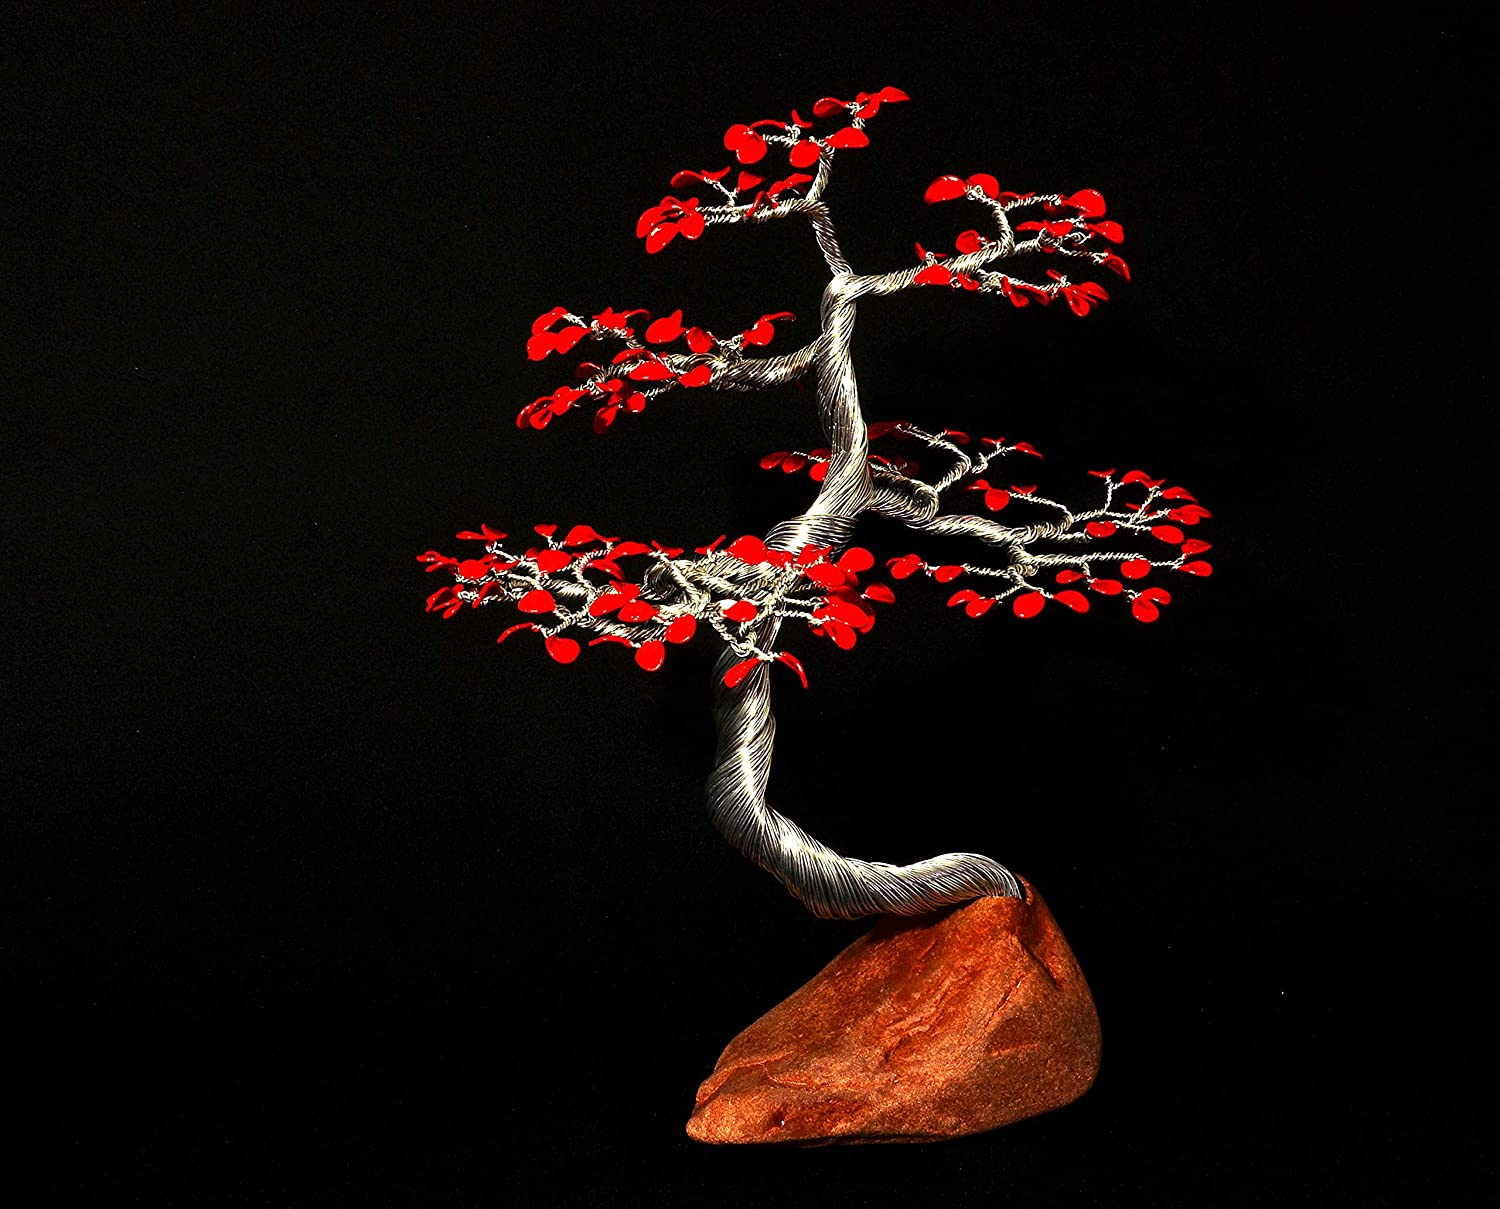 Amazon Com Bonsai Wire Tree Sculpture On The Stone With Red Leafs Handmade